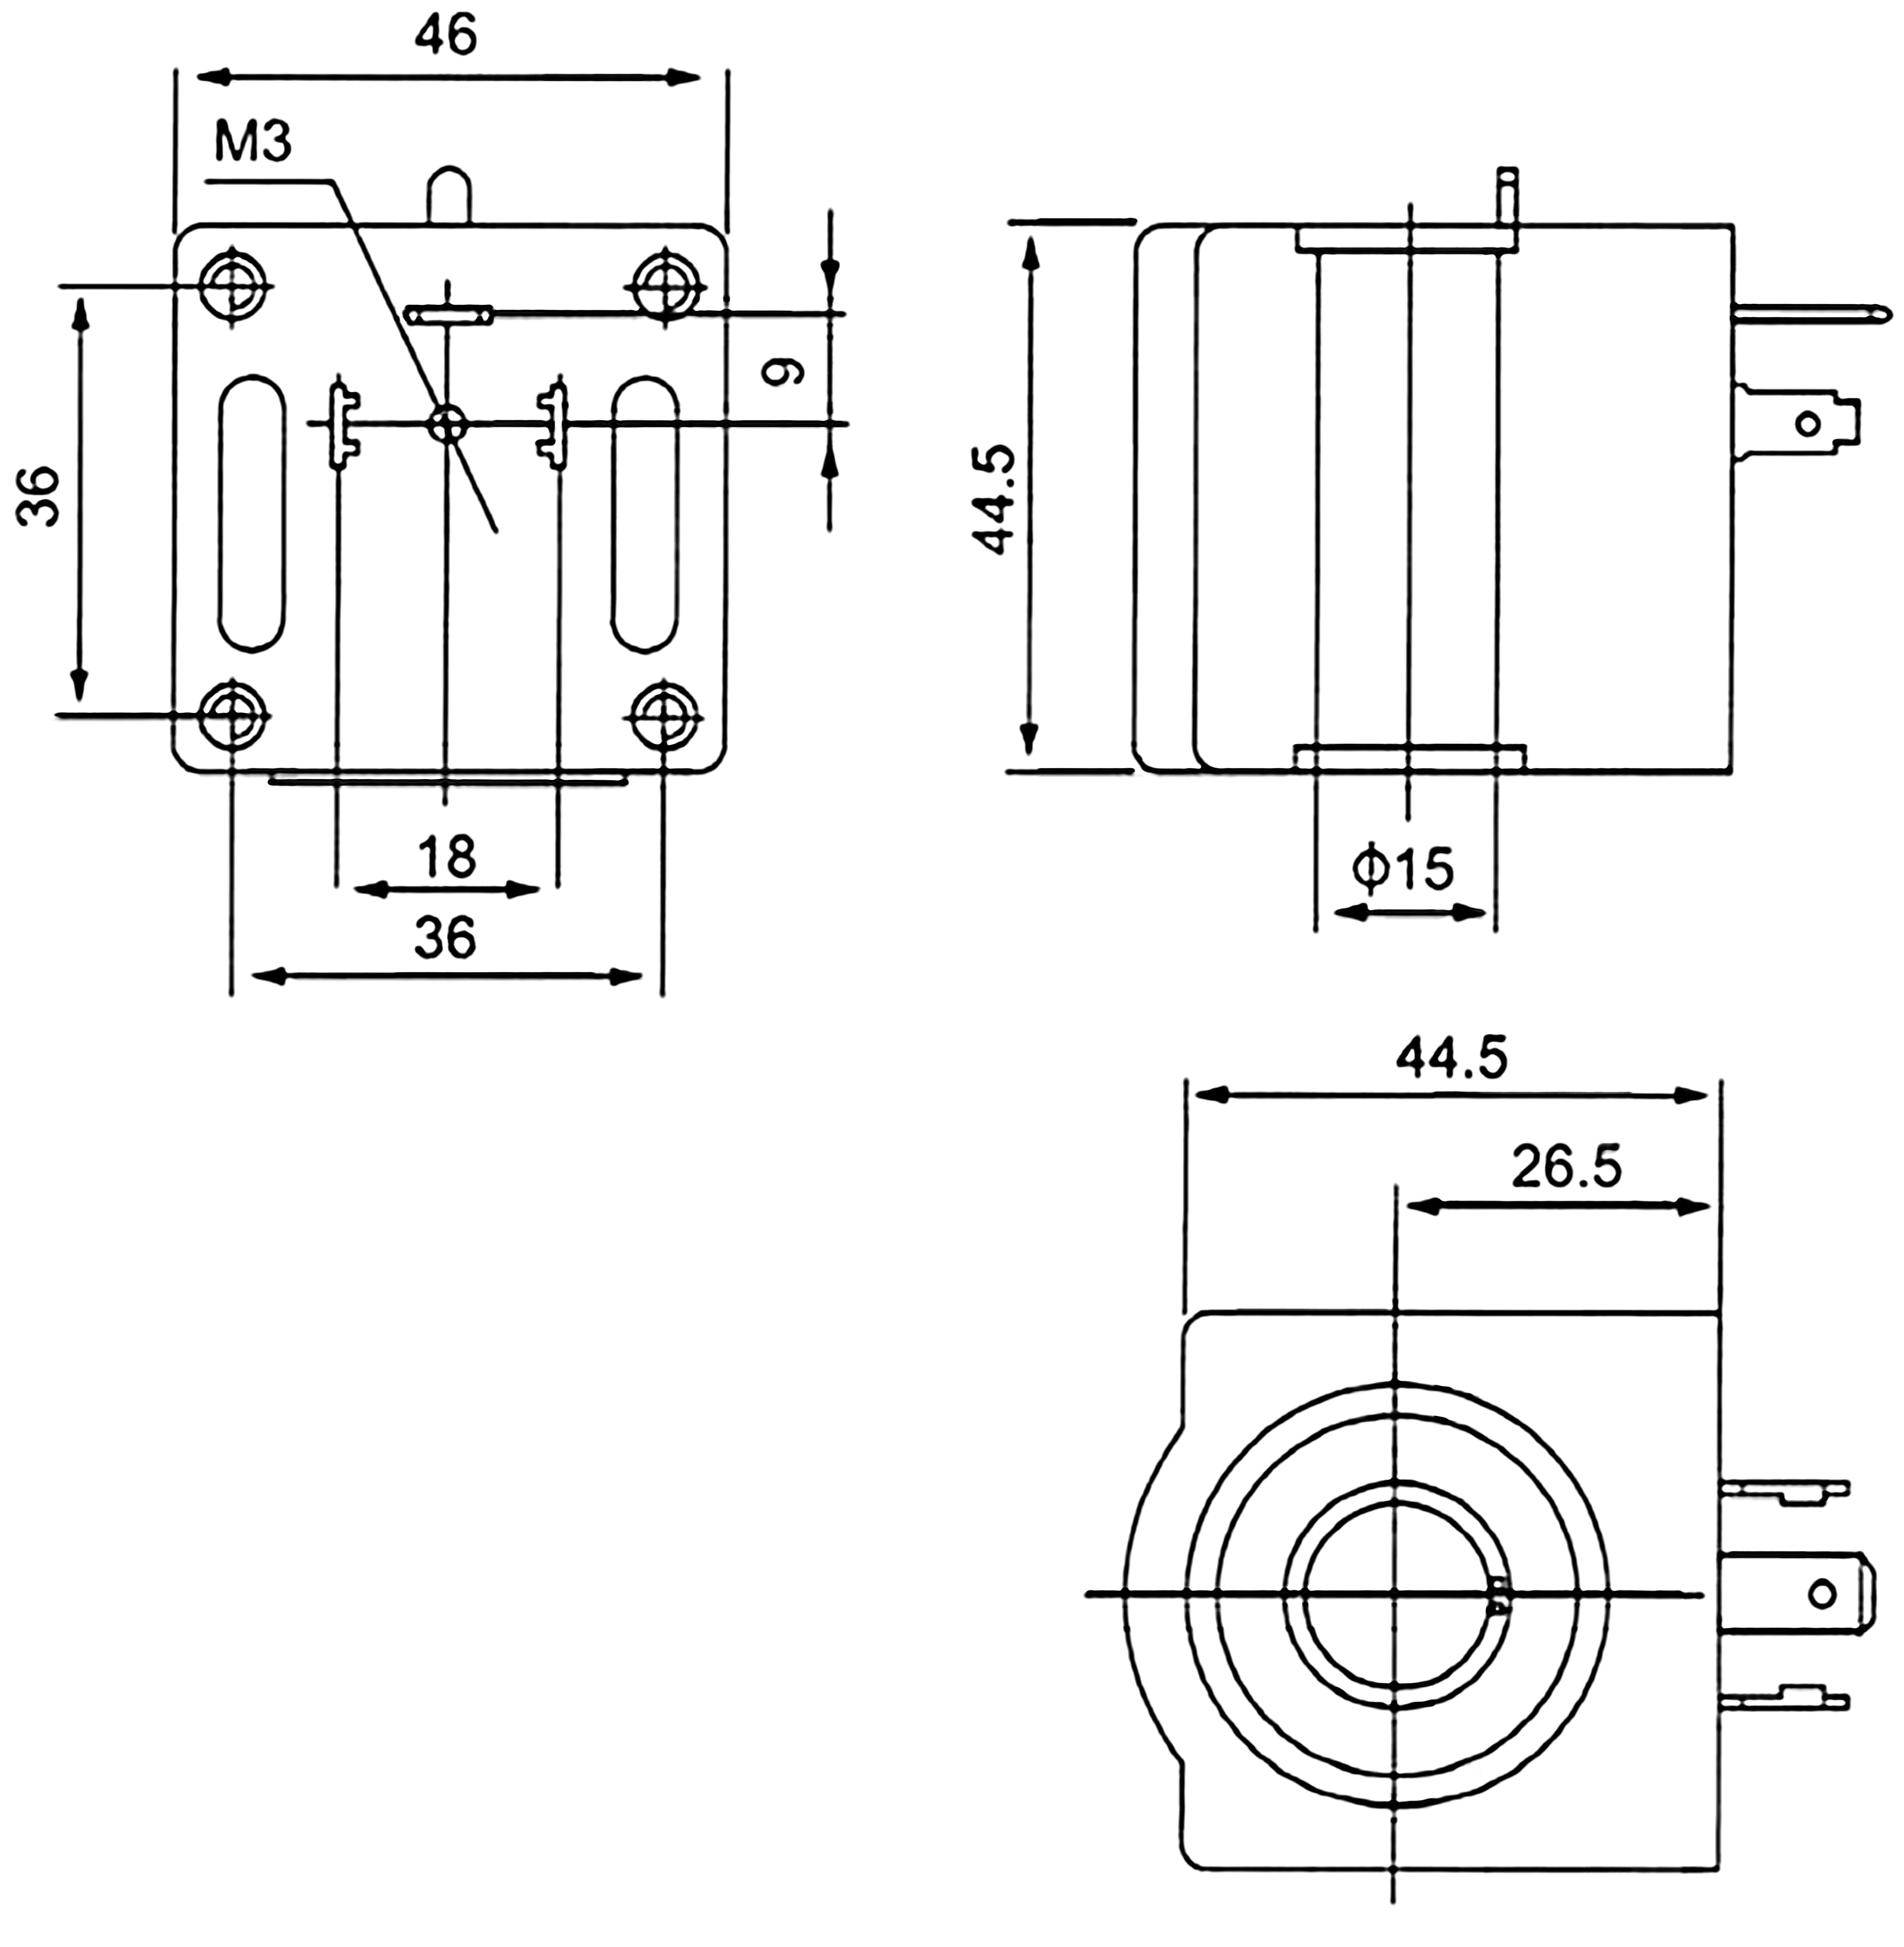 Dimension of BB15045010 Solenoid Coil: